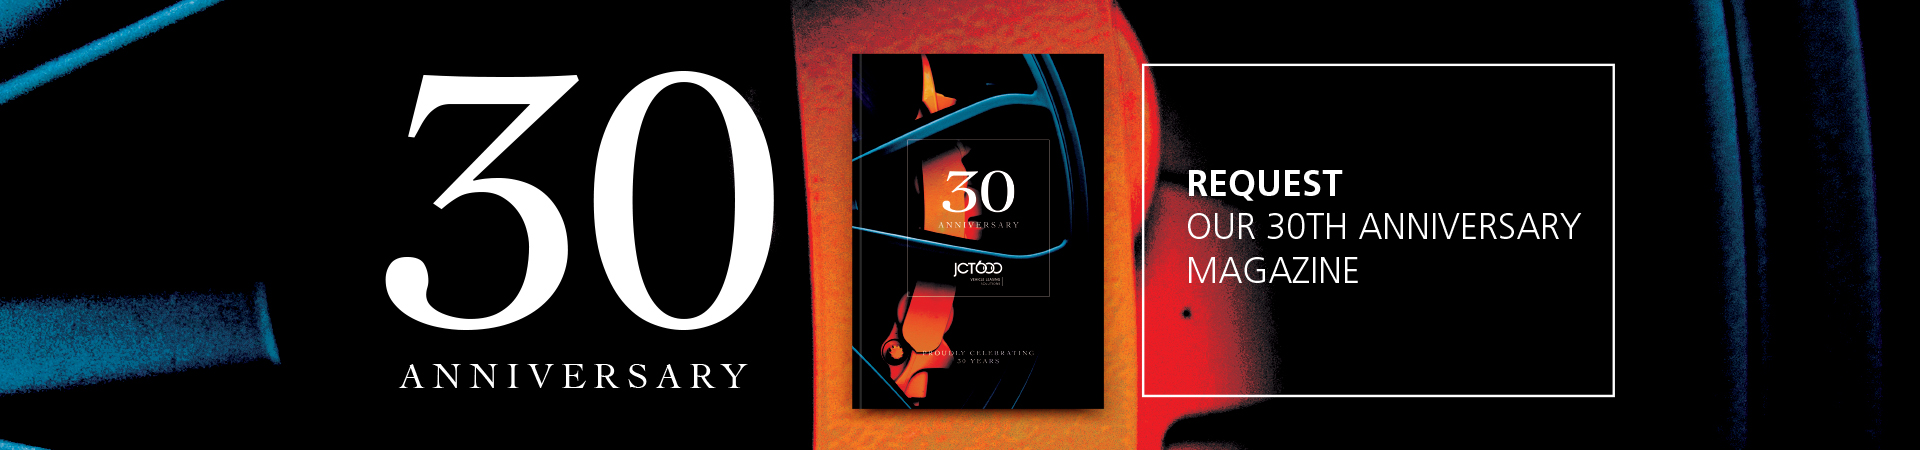 JCT600-Vehicle-Leasing-Solutions-30th-Anniversary-Magazine-Banner